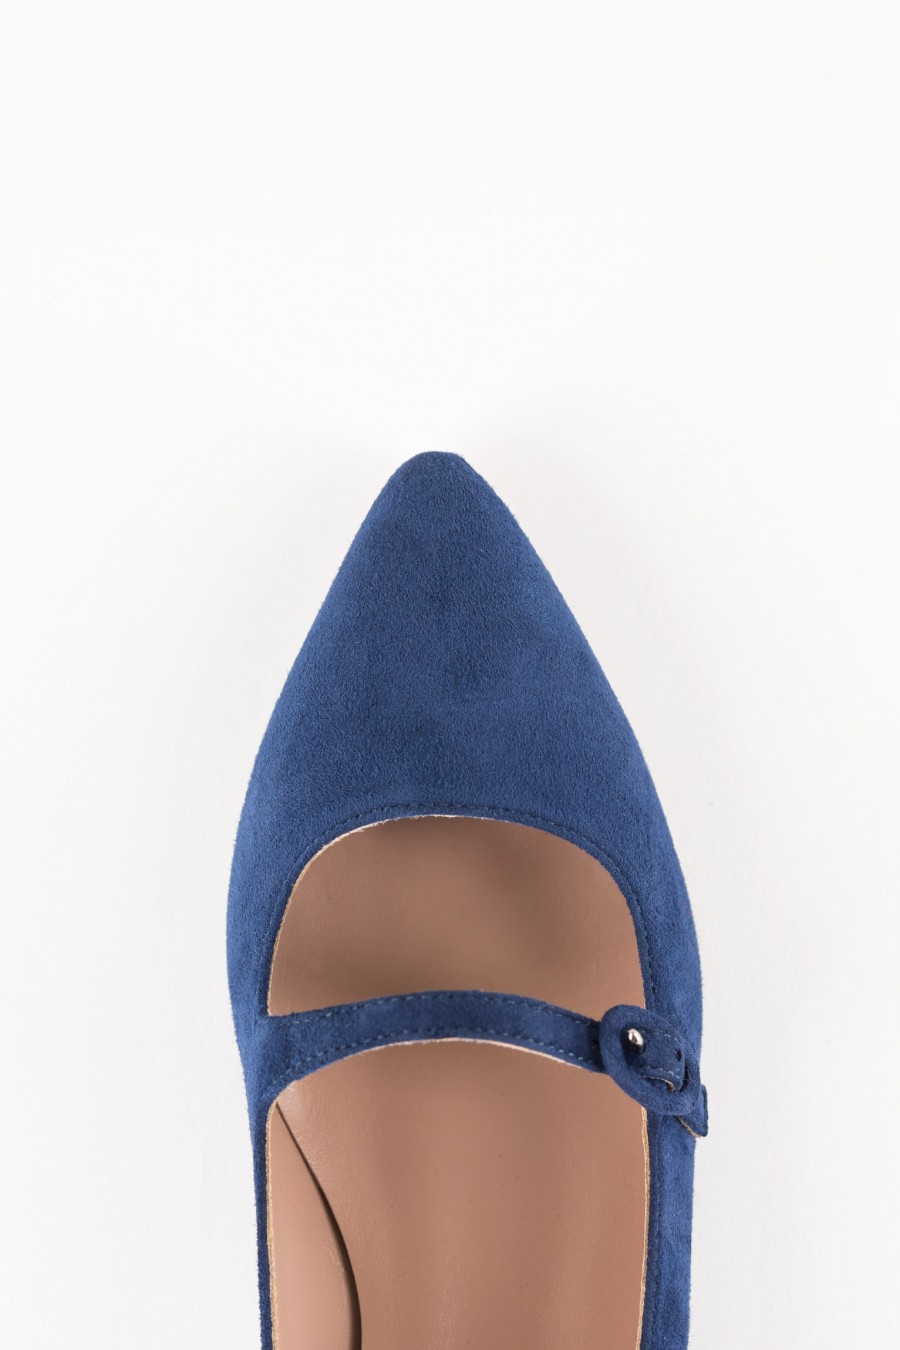 Blue suede pointy flats